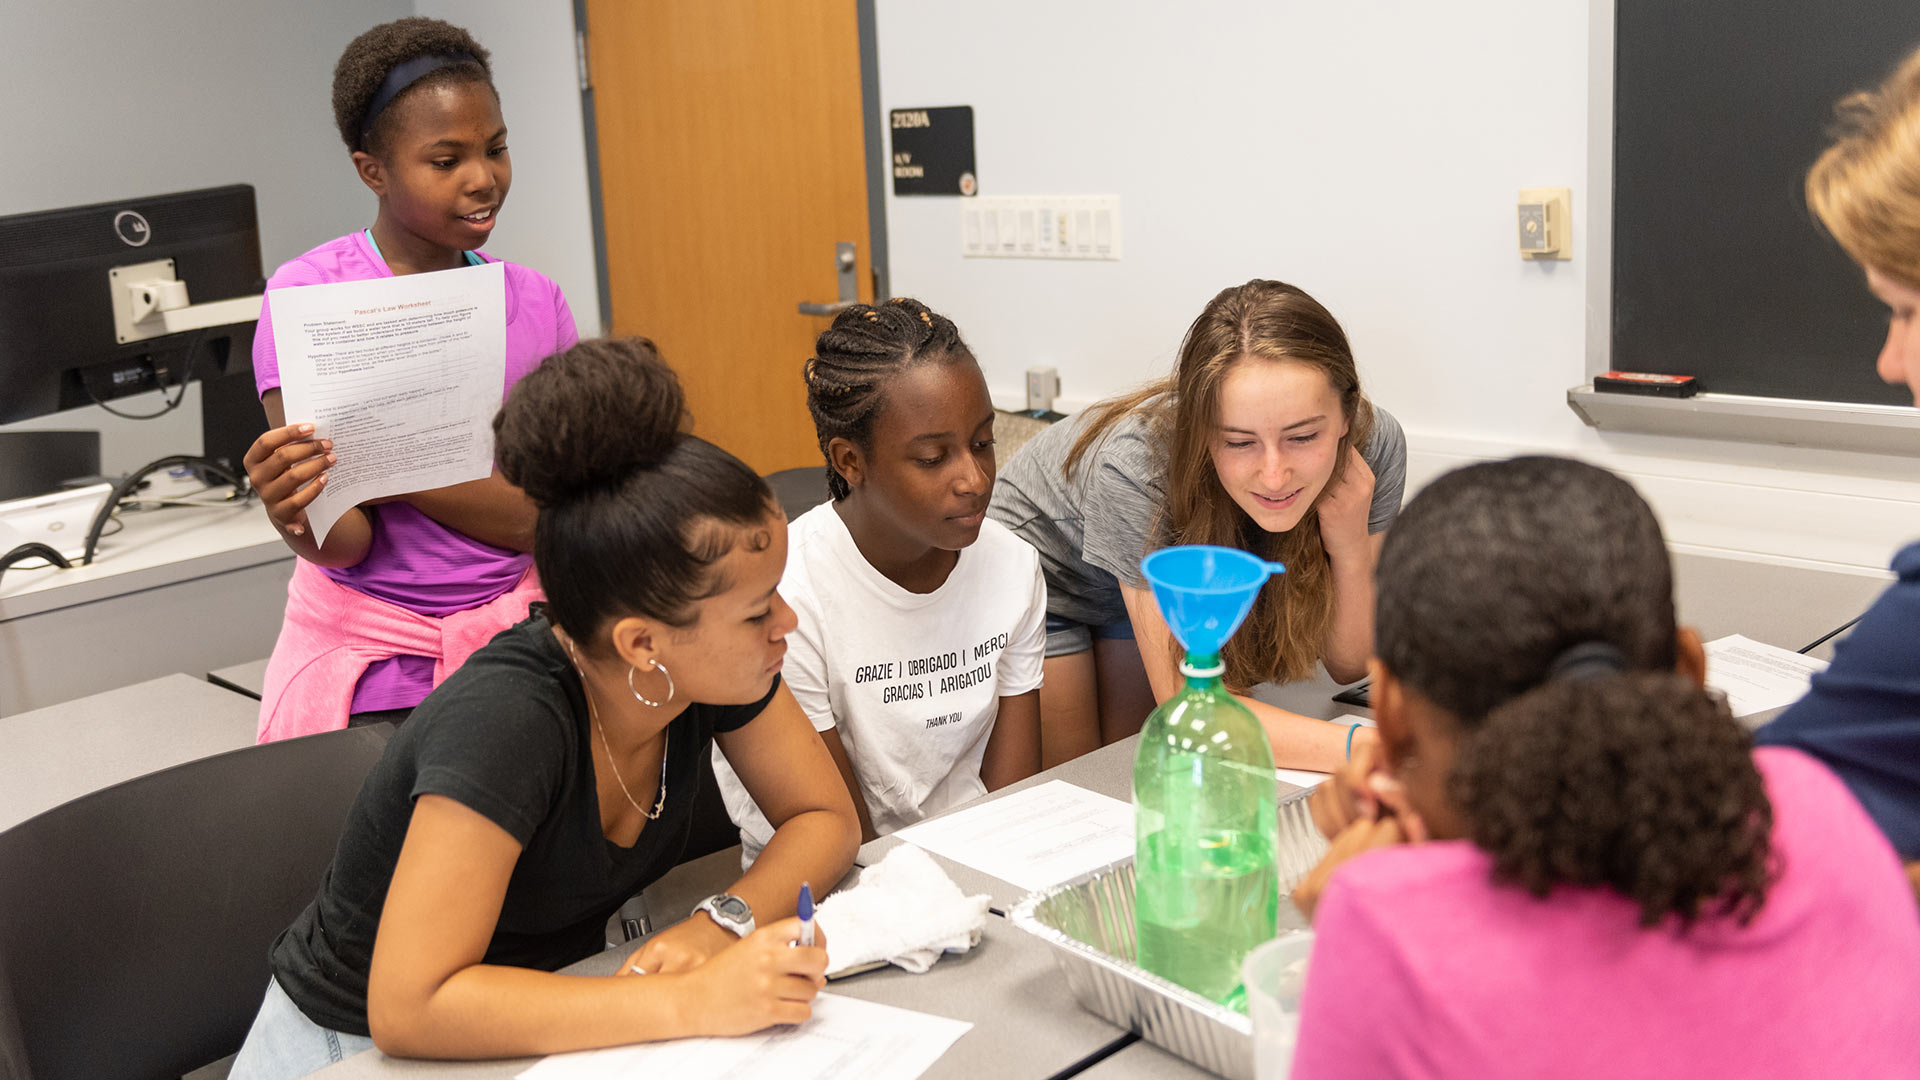 Girls learn engineering basics at a 2019 A. James Clark School of Engineering summer camp. A $3 million gift announced today from Lockheed Martin will in part support STEM education for women and underrepresented minorities. (Photo by Alison Harbaugh)